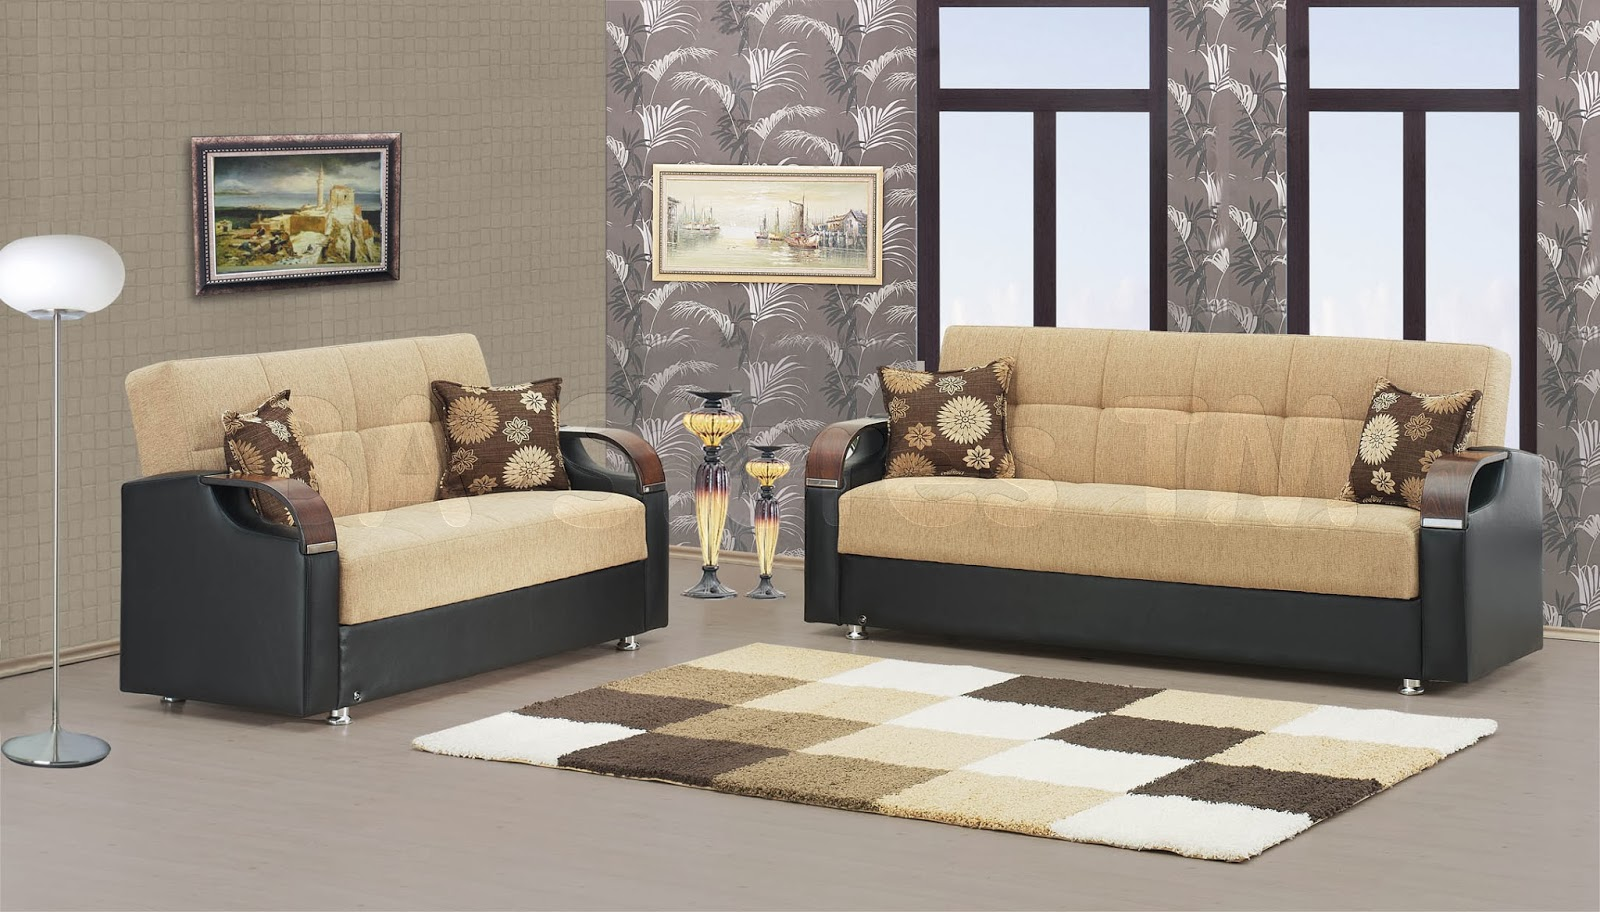 sofa set design sofa set design sofa set design title=